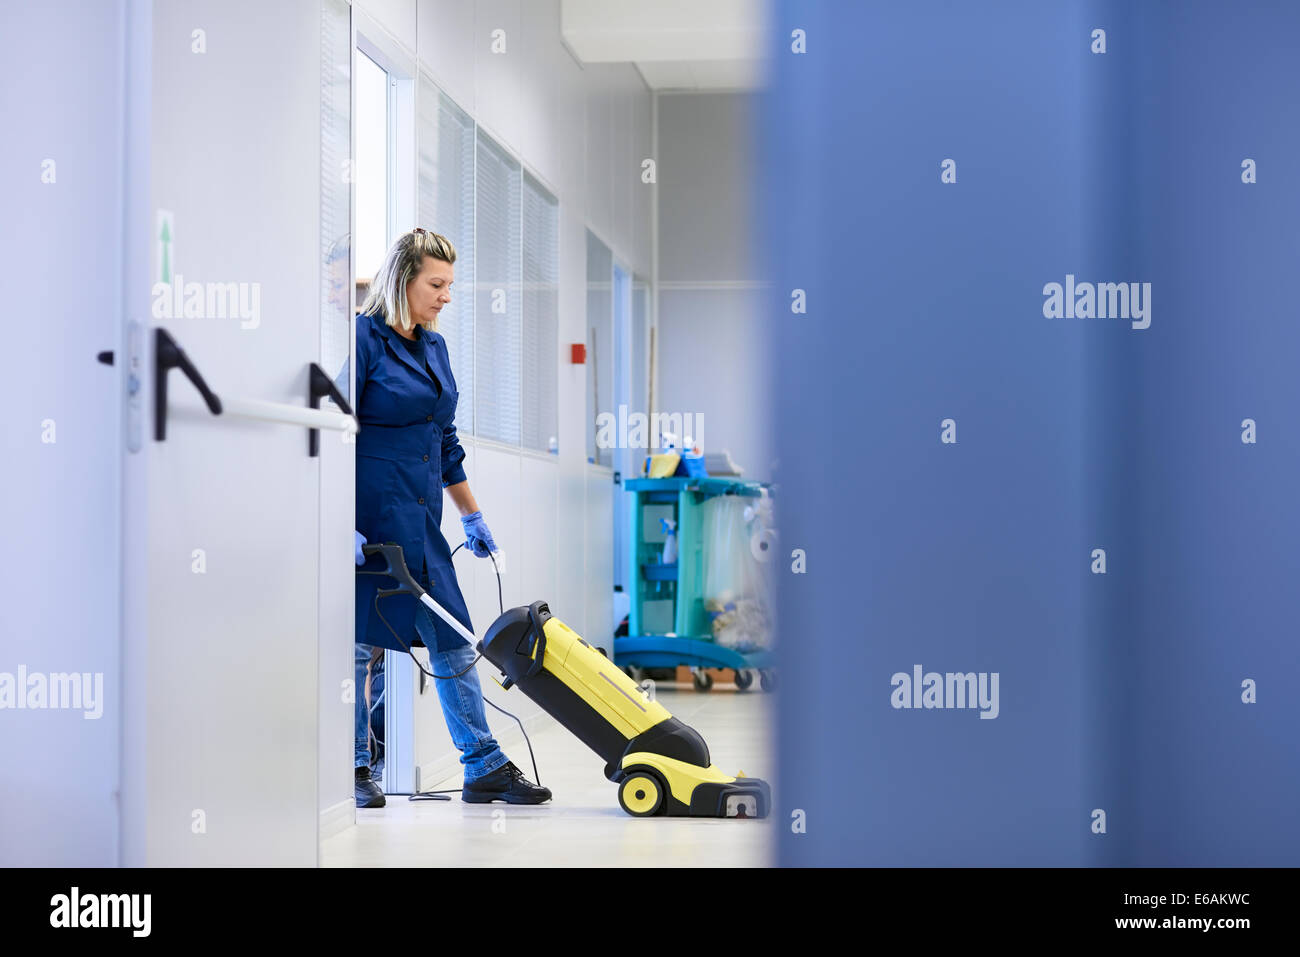 Parkett Politur Cleaner Vacuuming Women Stockfotos And Cleaner Vacuuming